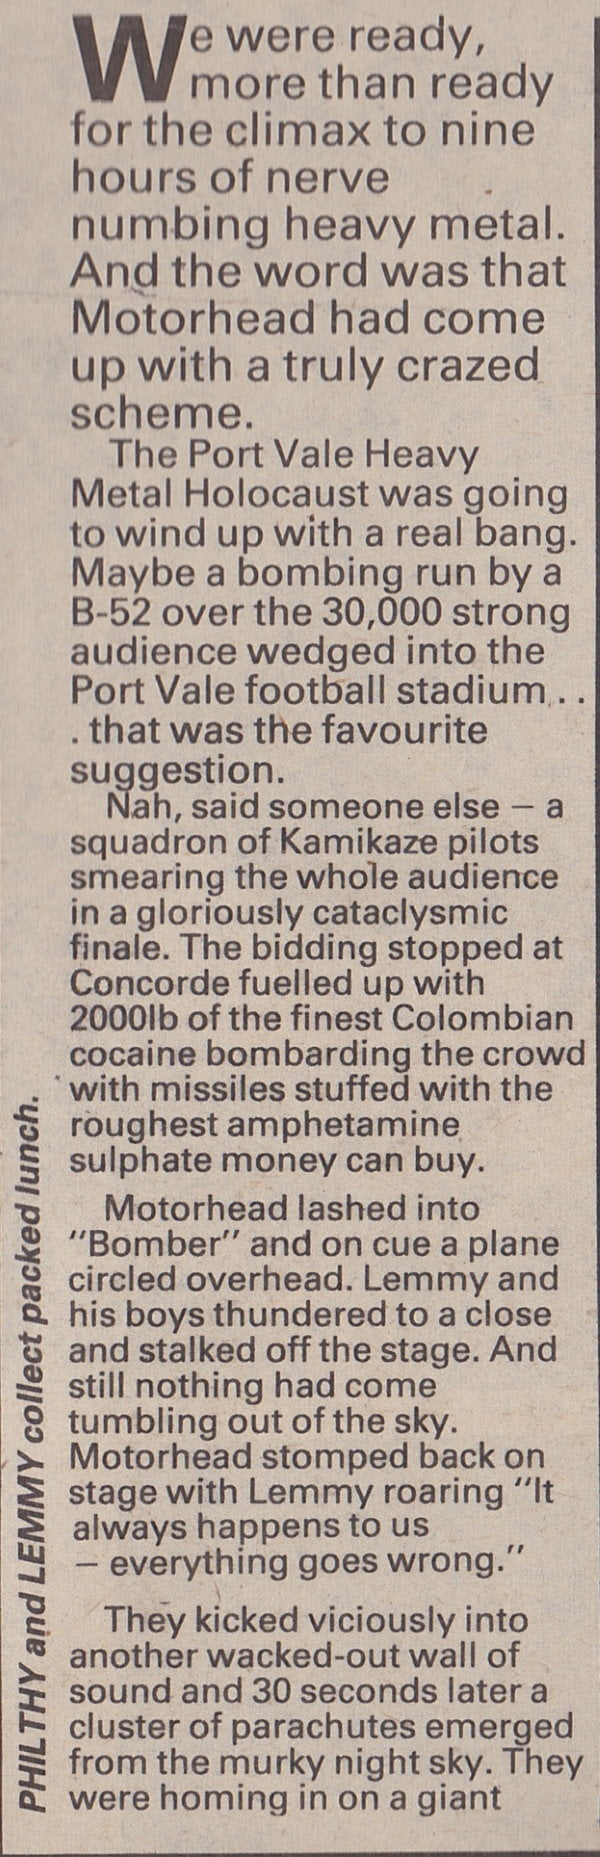 Melody Maker report on the Port Vale Heavymetal Holocaust concert